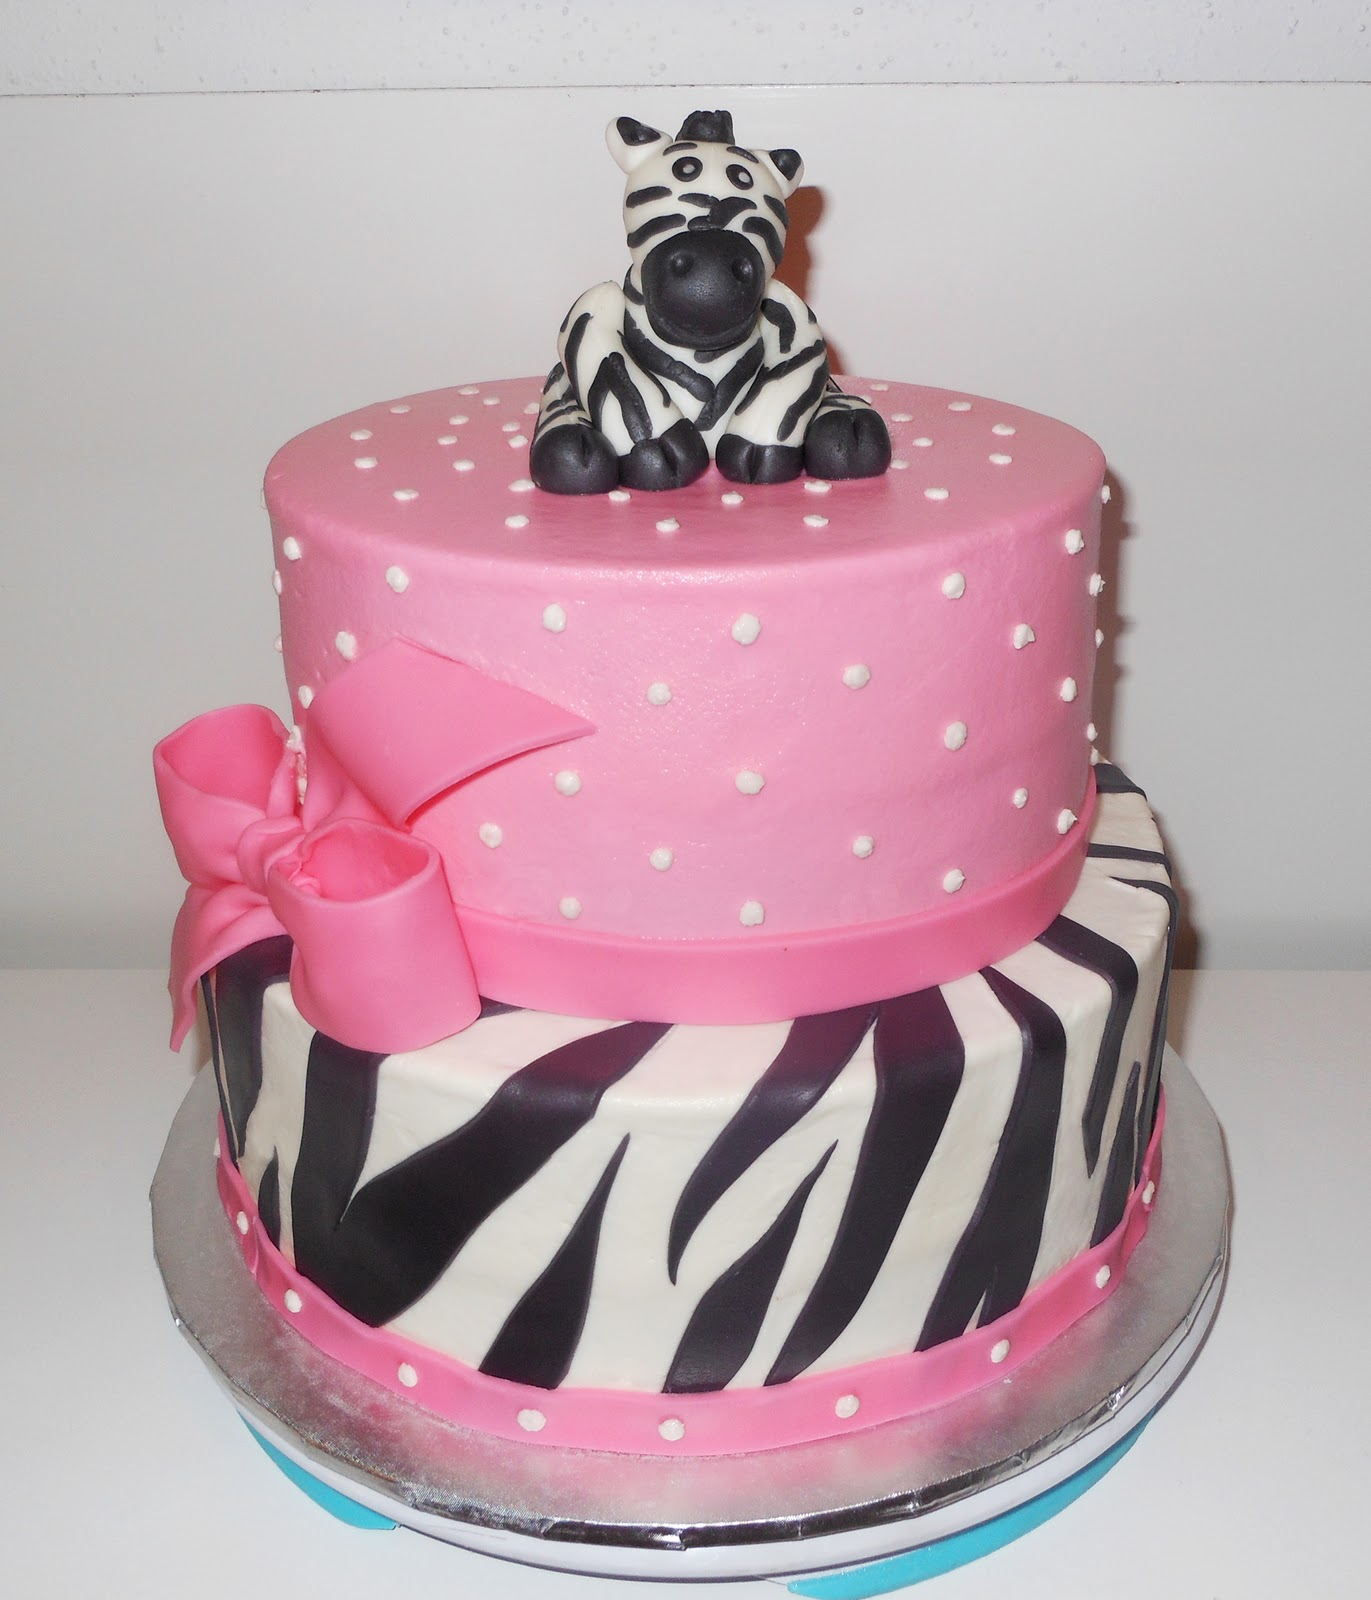 Leopard Print Baby Shower Supplies: Carla's Cakes: January 2012